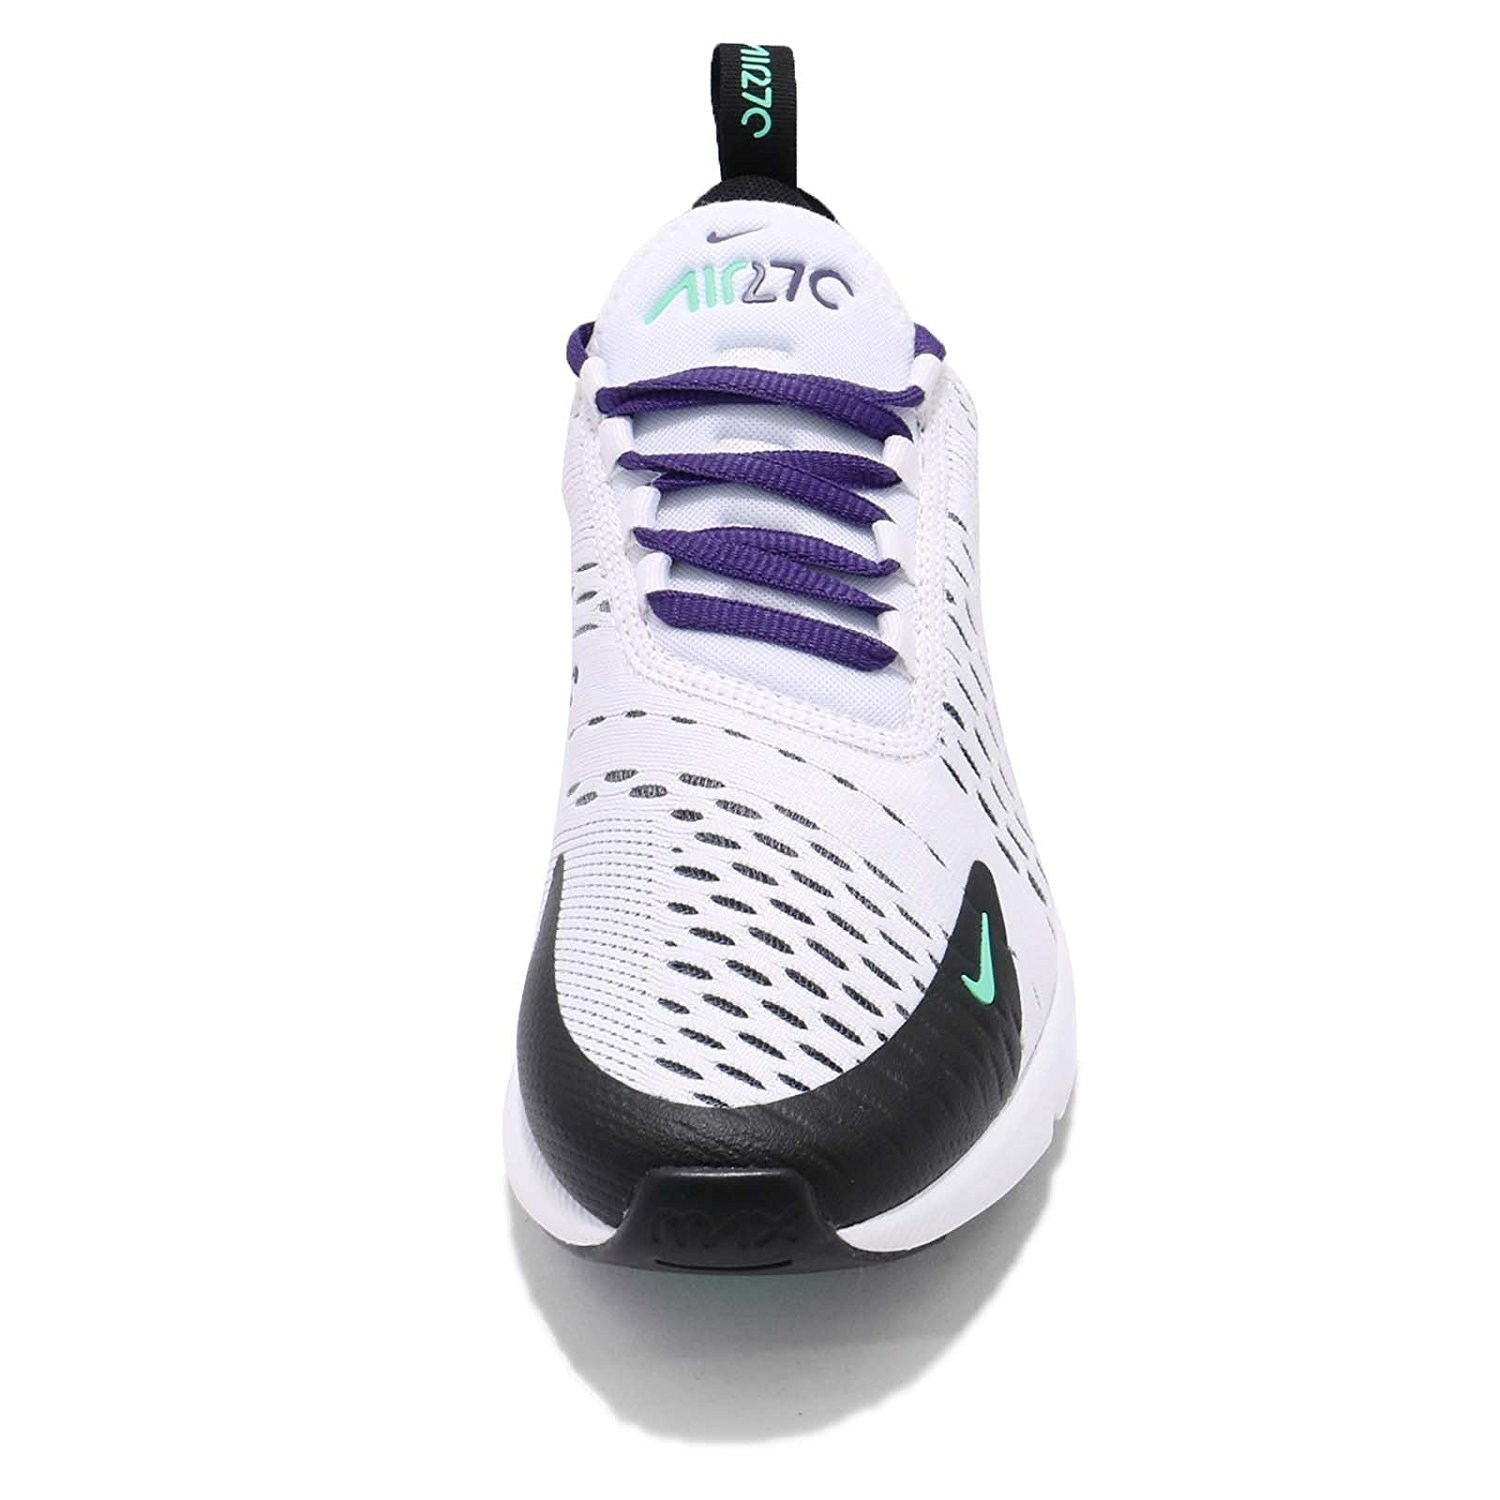 Nike Air Max 270 180 Running Shoes Sport Outdoor Sneakers Comfortable Breathable for Women 943345-601 36-39 EUR Size 314